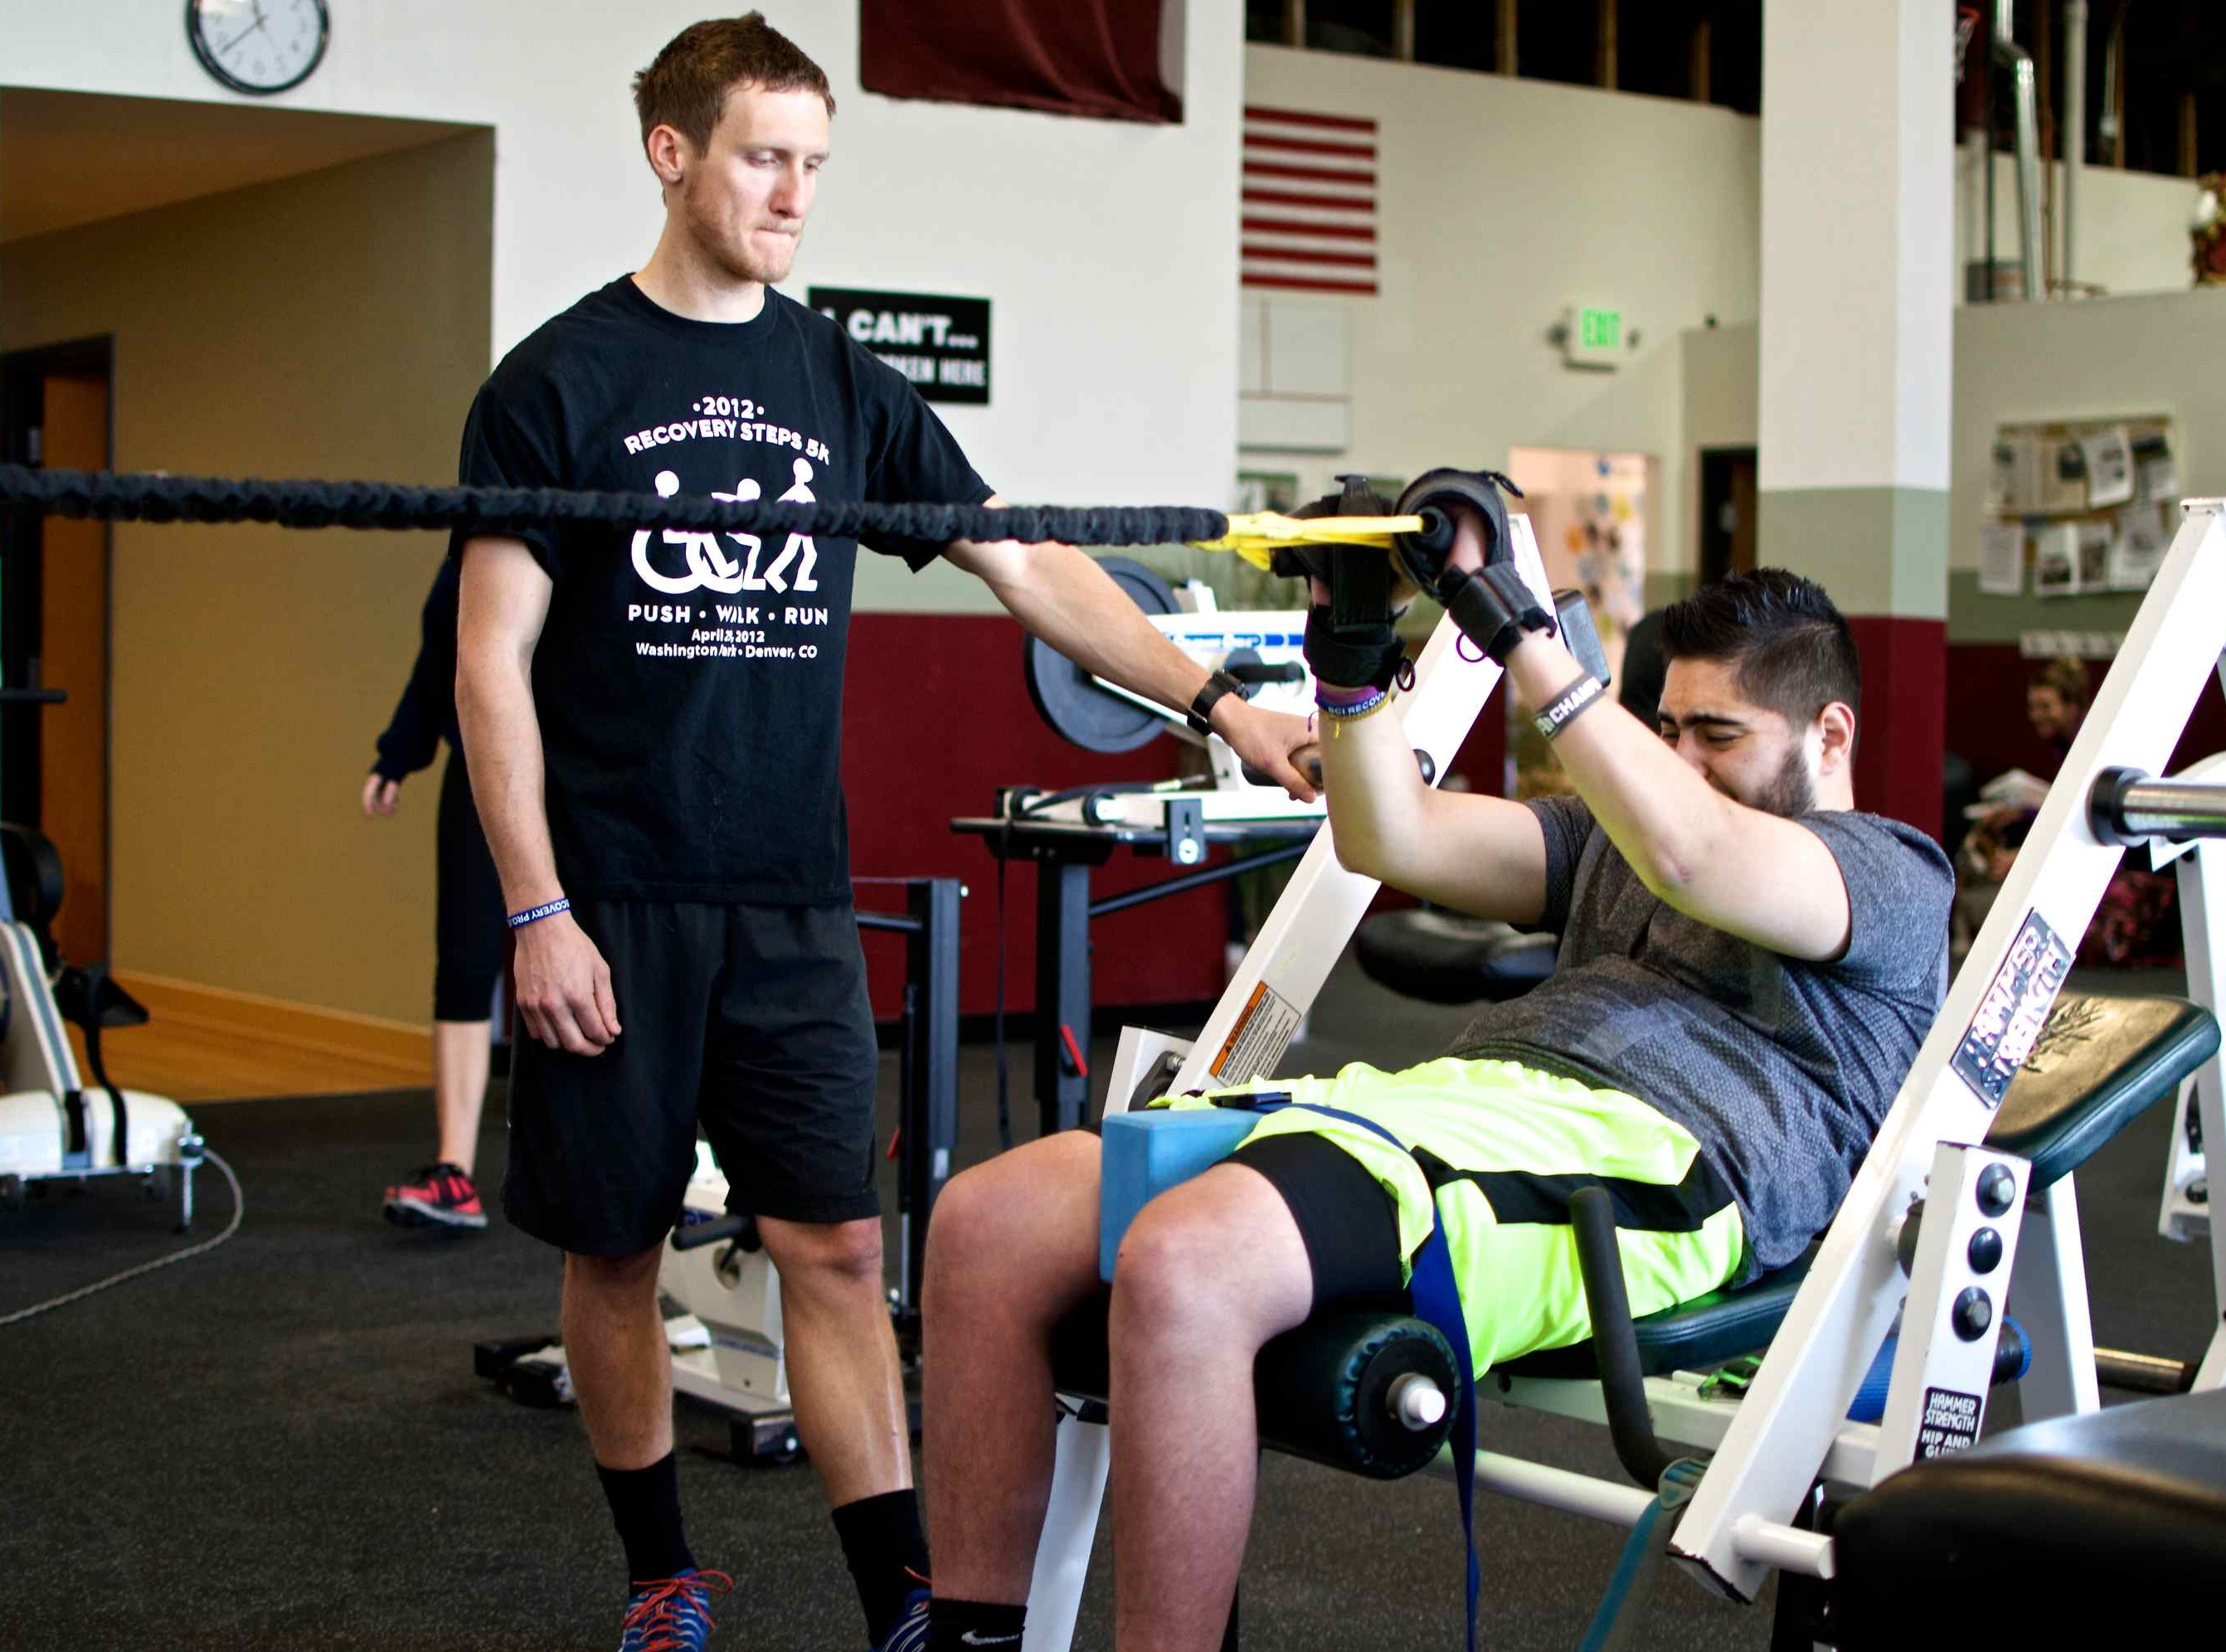 General Purpose aids in rehab. Adaptive gym equipment. Suitable for reduced hand function: tetra, quad, cerebral palsy, SCI, spinal cord injury, limb difference, stroke and more.